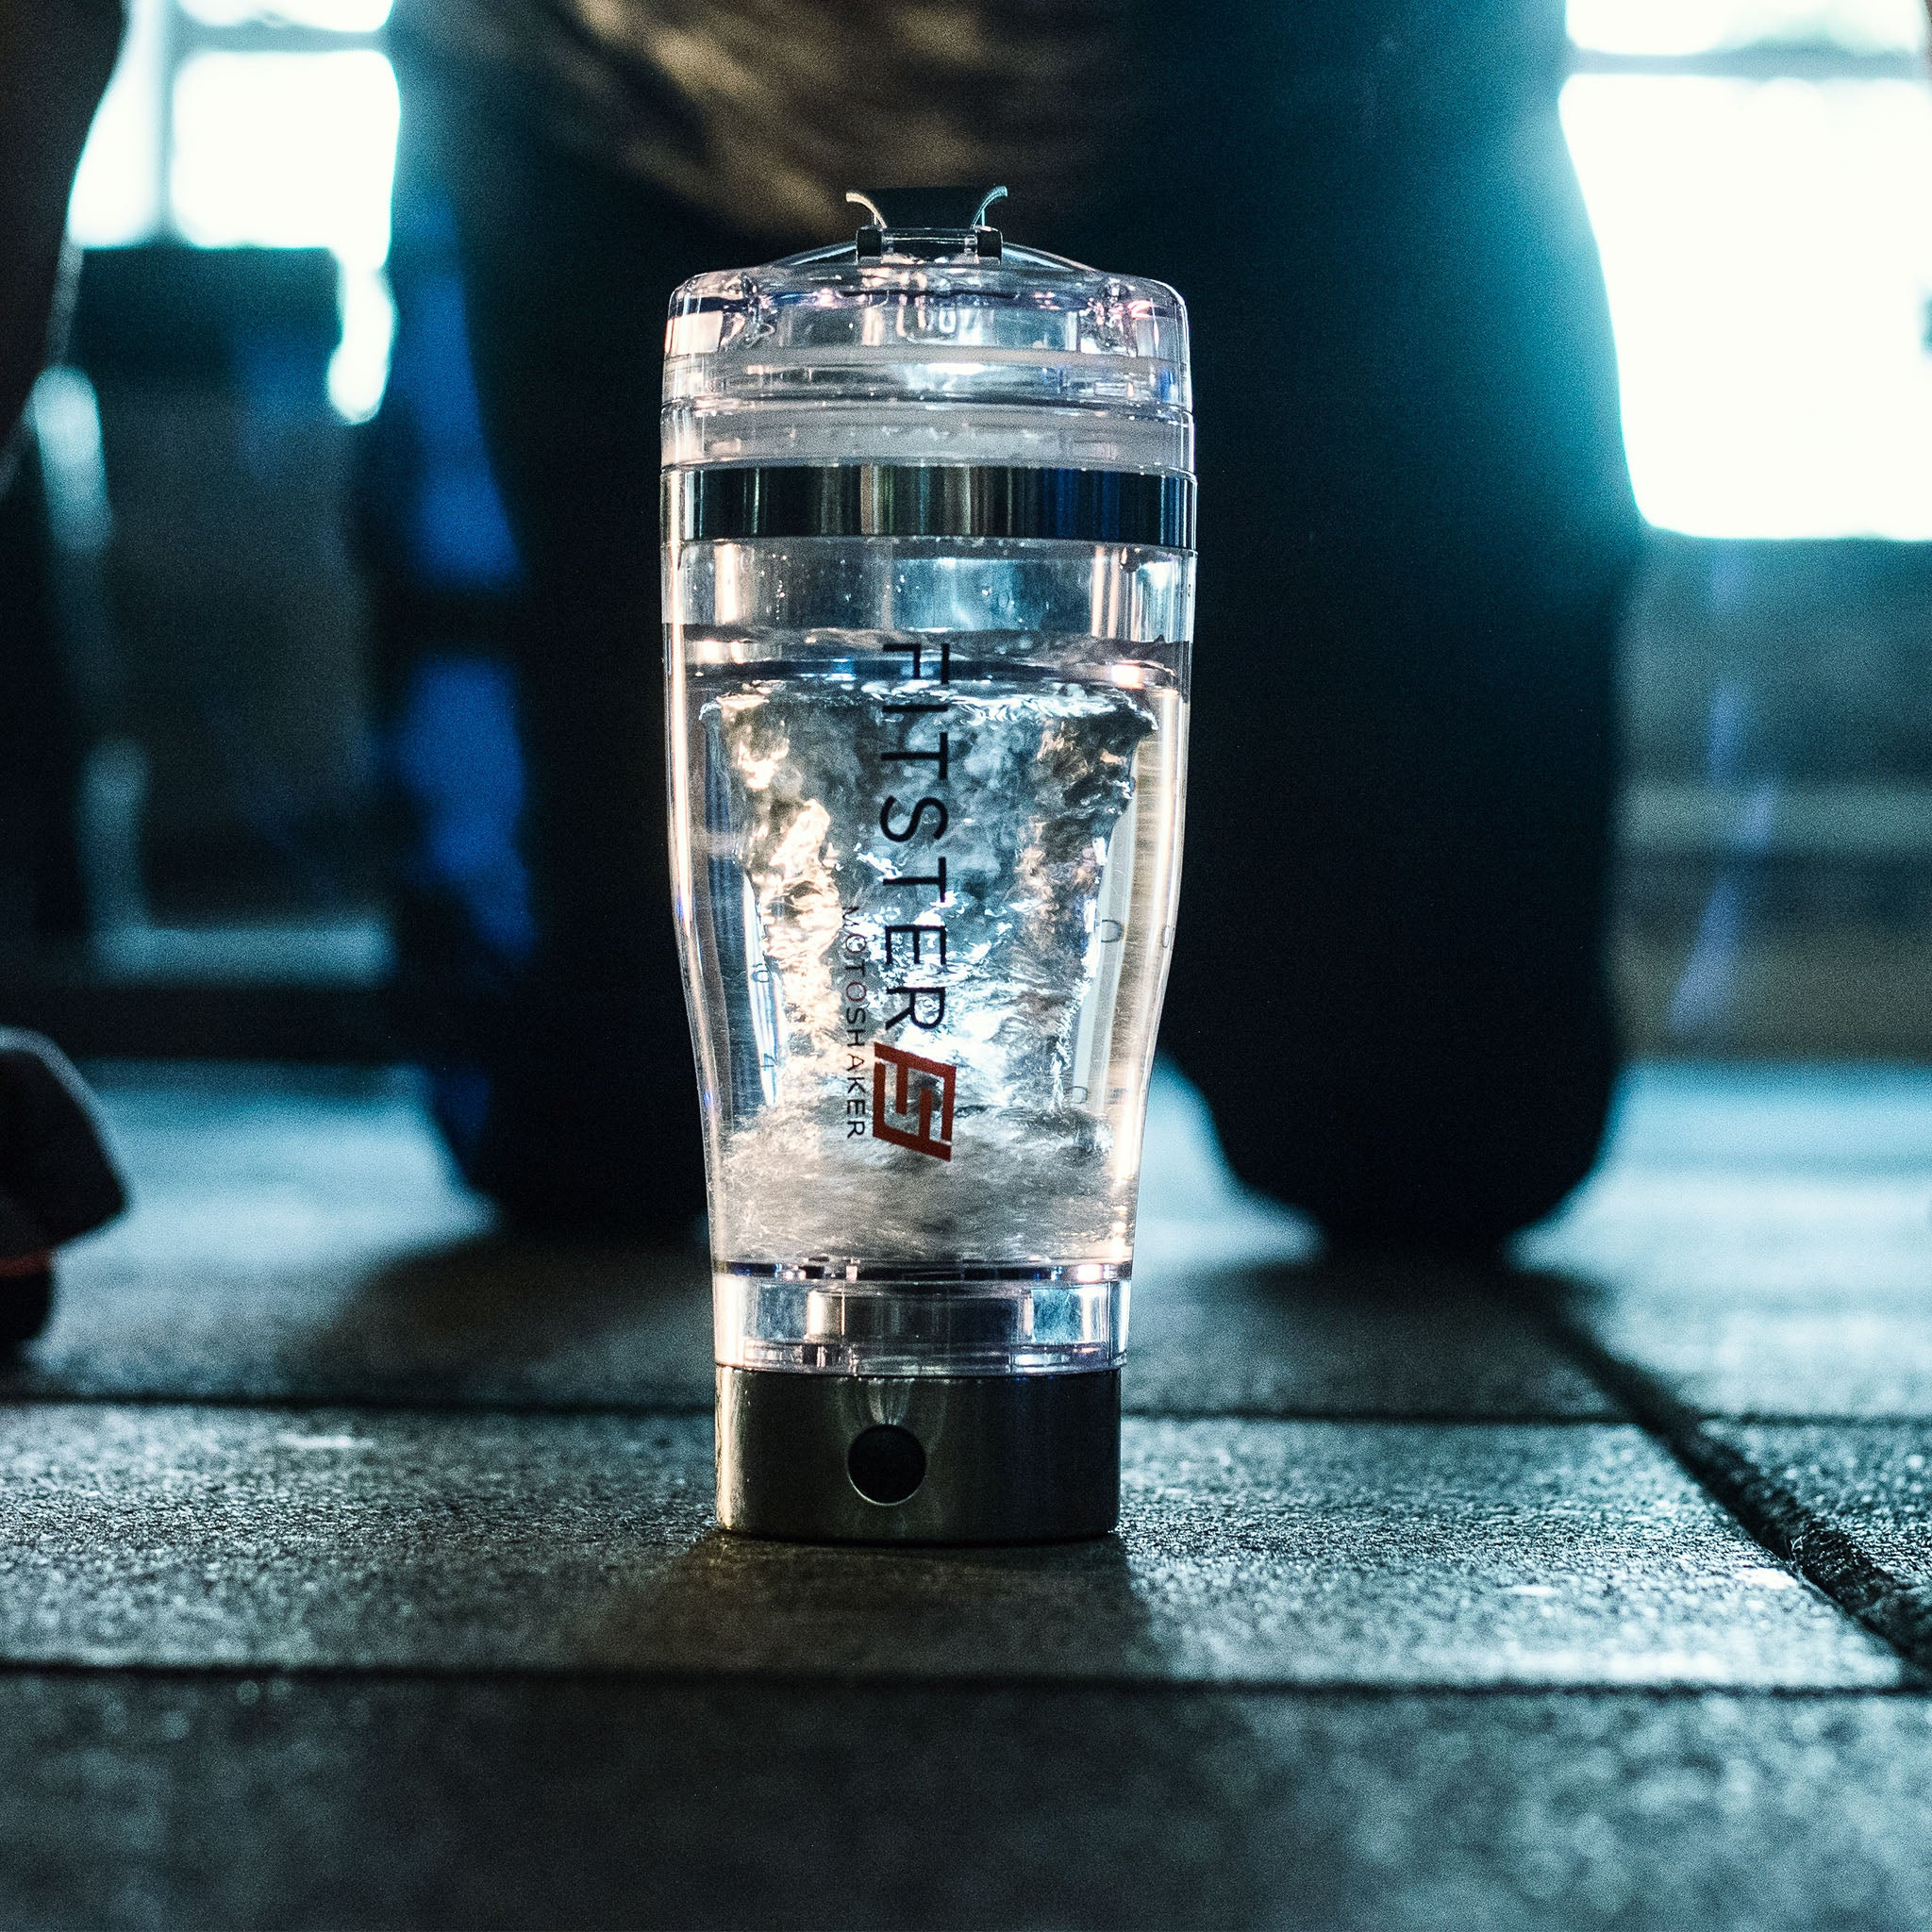 Moto Shaker Blender Bottle by Fitster5 with USB Charging